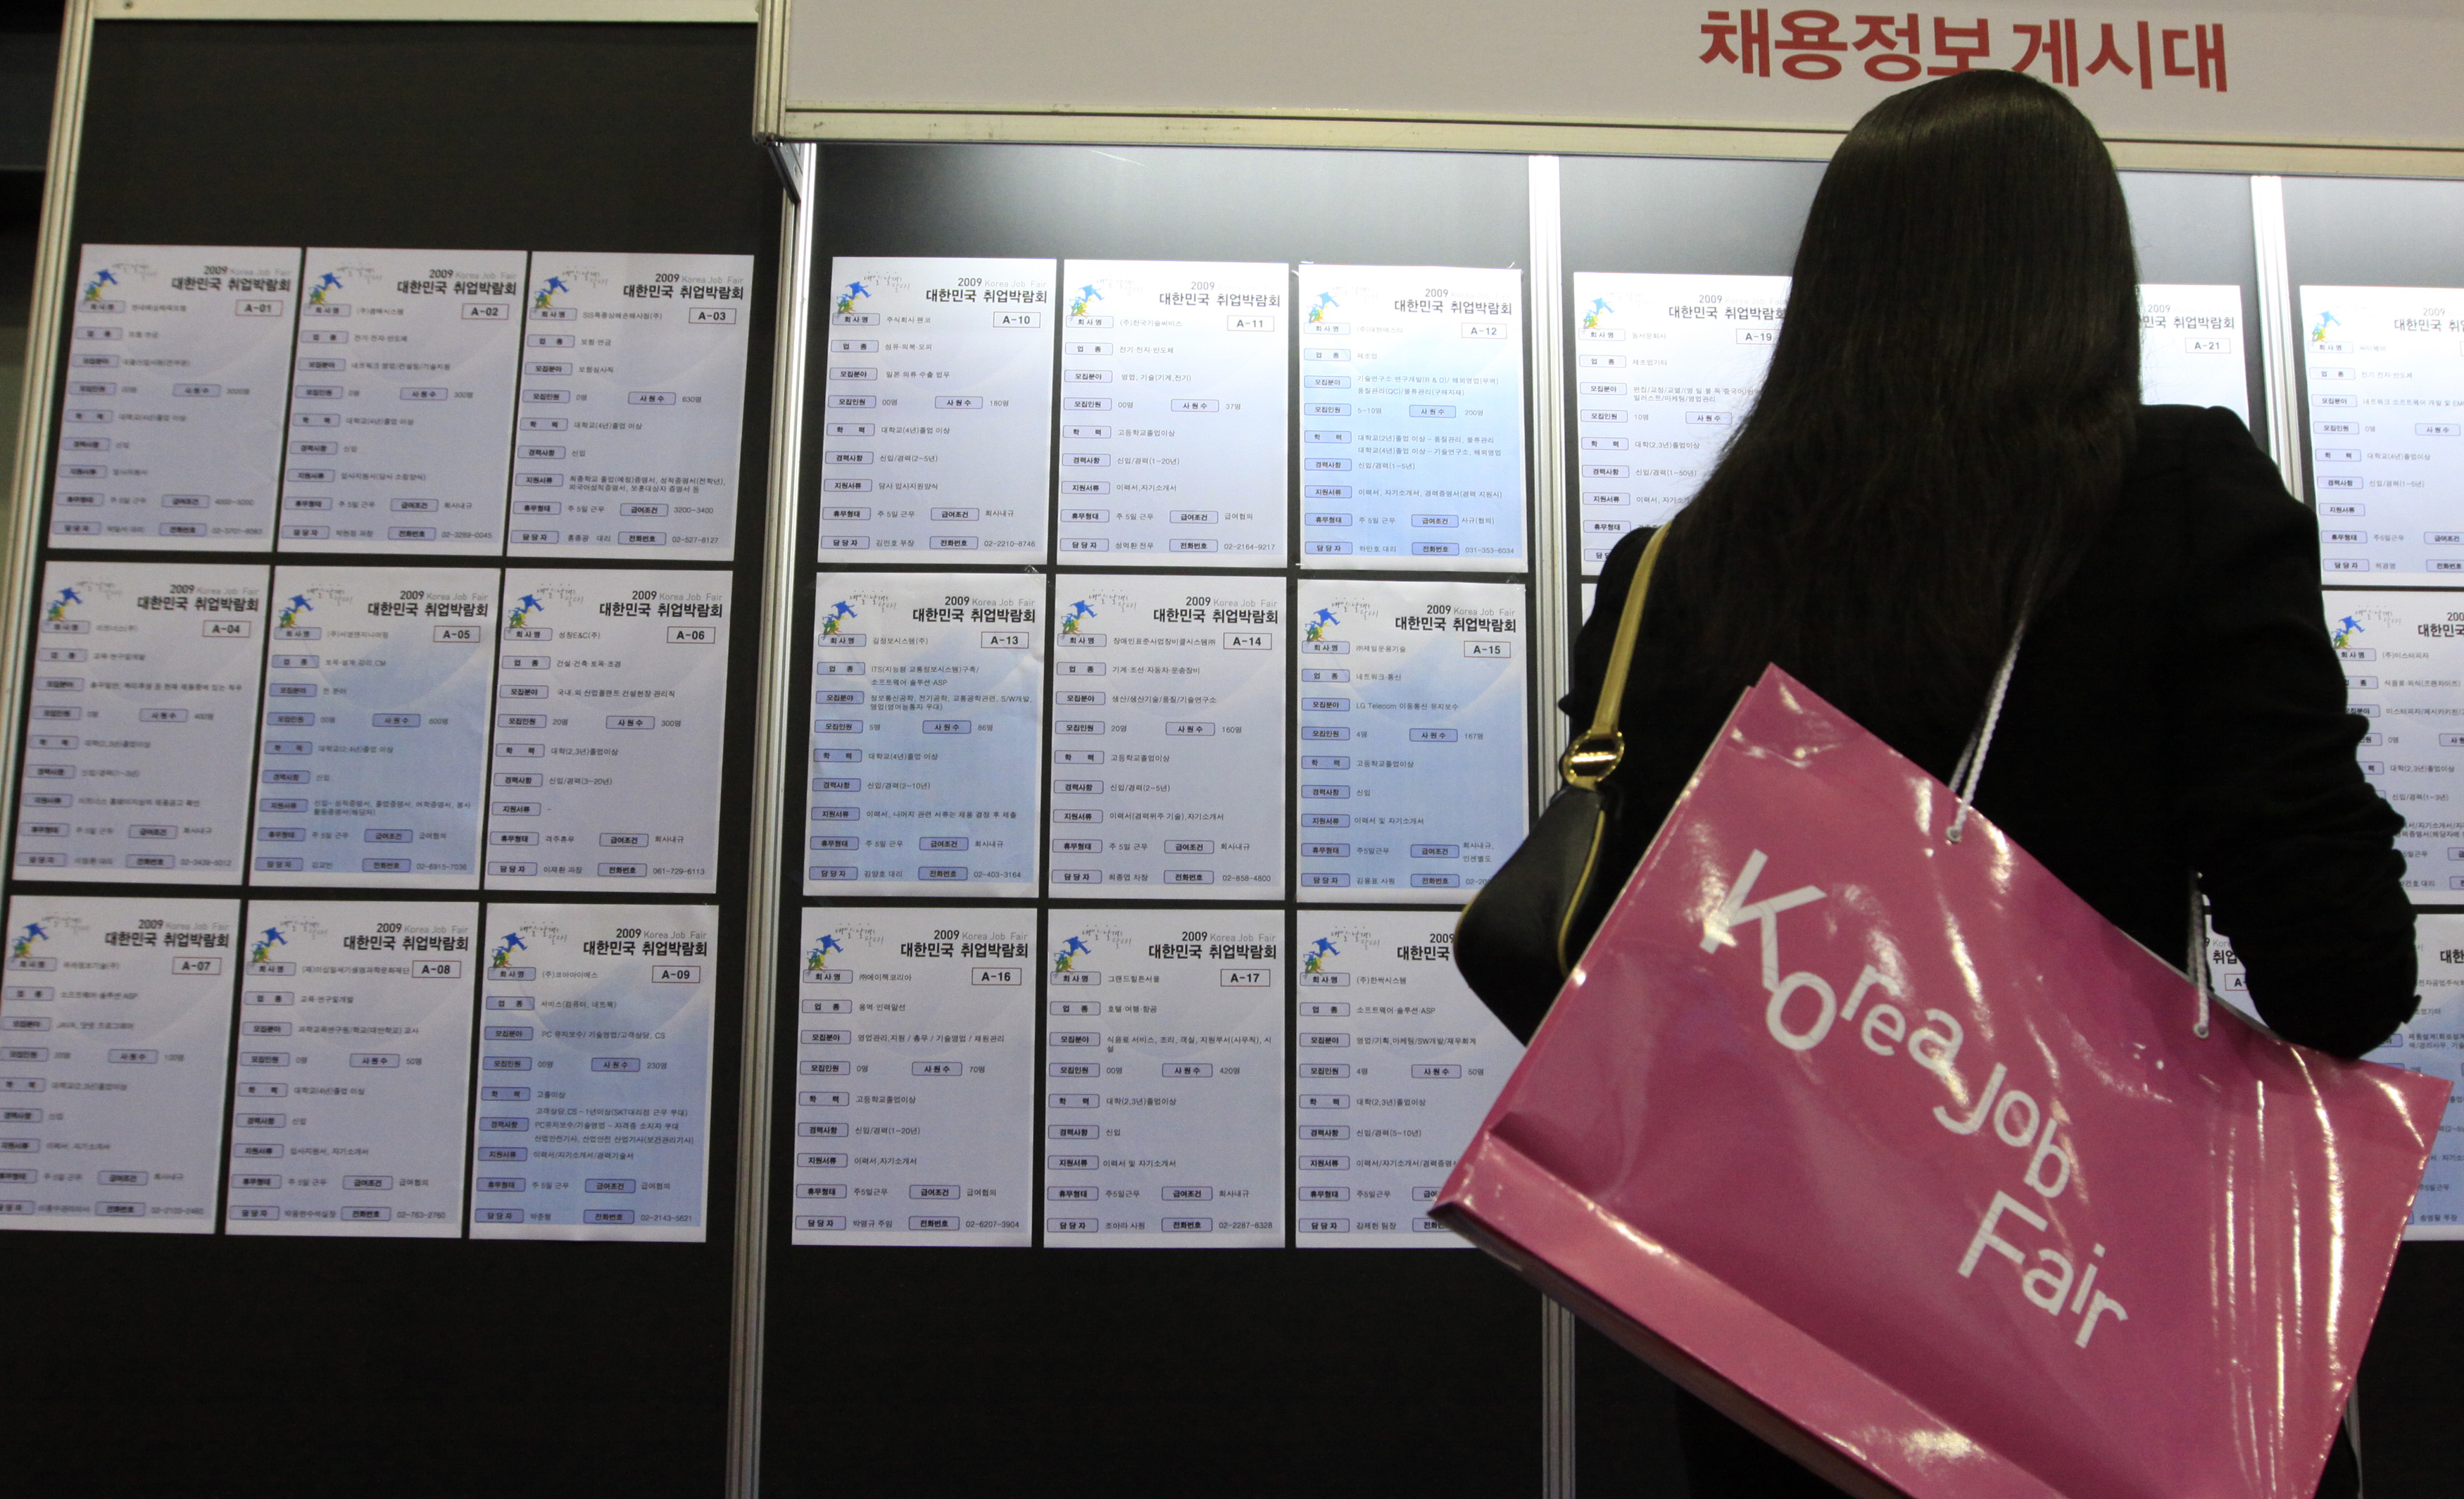 A job seeker looks at a board to have an interview for a job at the Korea Job Fair in Seoul